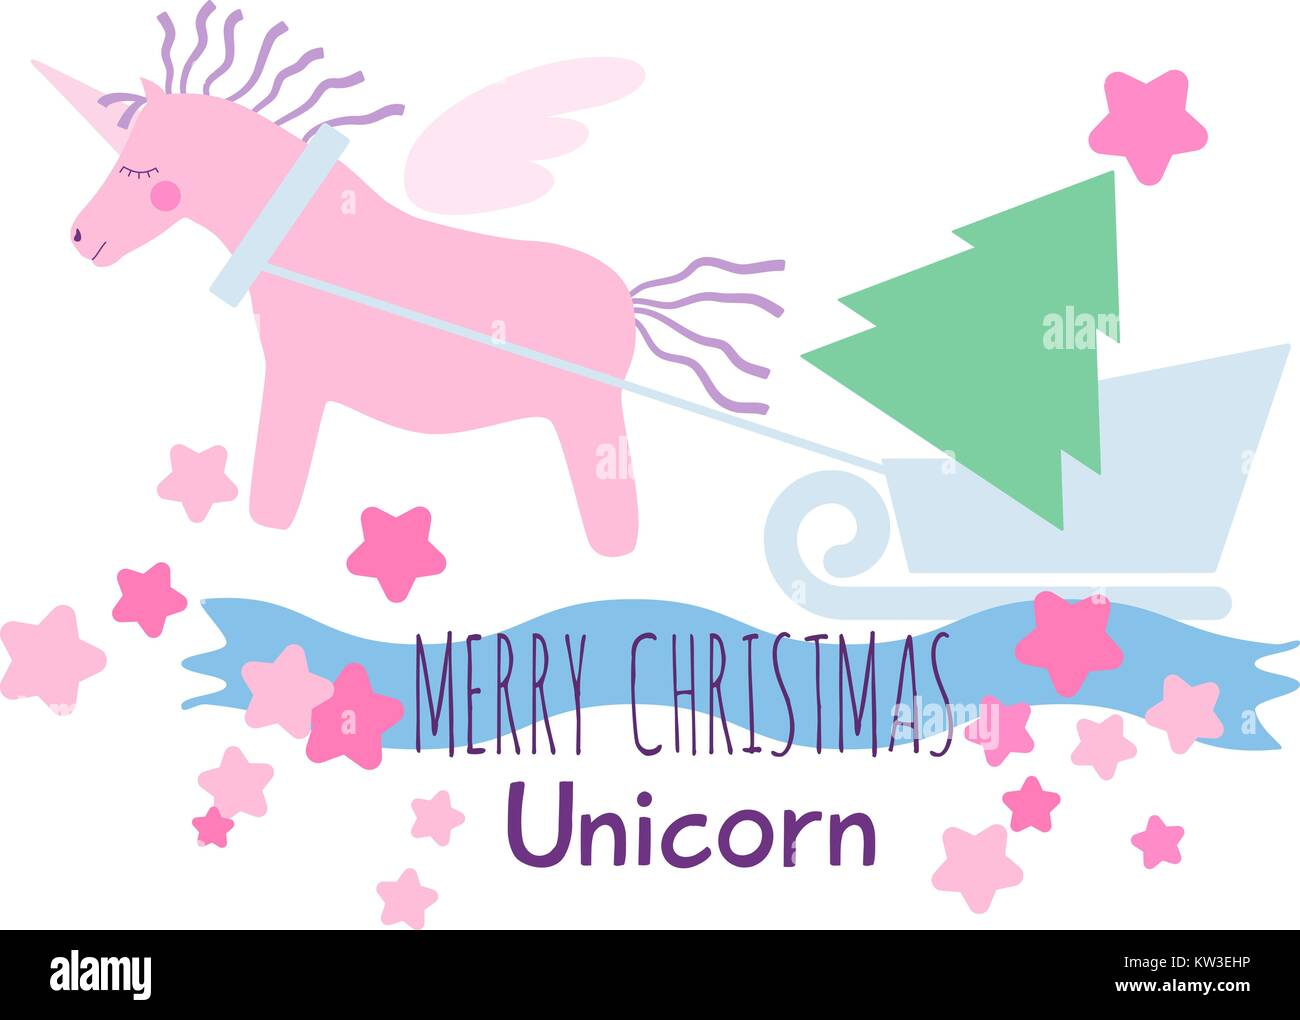 Pink winged unicorn horse with violet mane and tail pulls a sleigh with a Christmas tree. Holiday greeting card. - Stock Vector